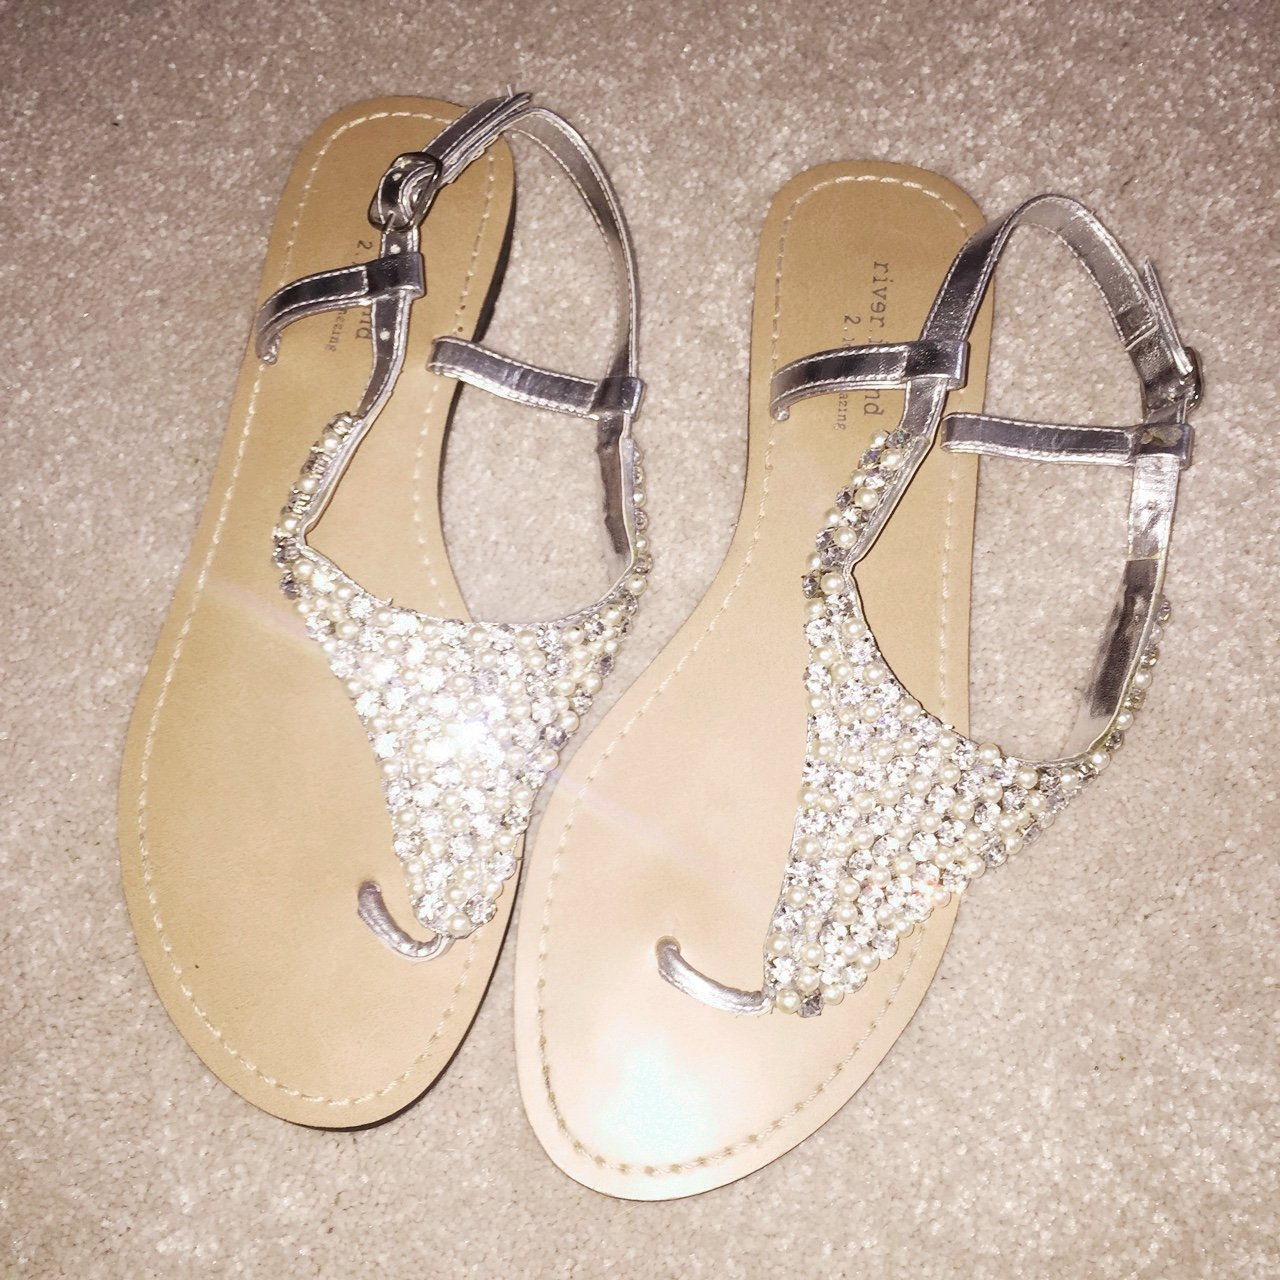 76ce700eacd6f Pearl   Diamond Sandals from River Island. Worn once great a - Depop